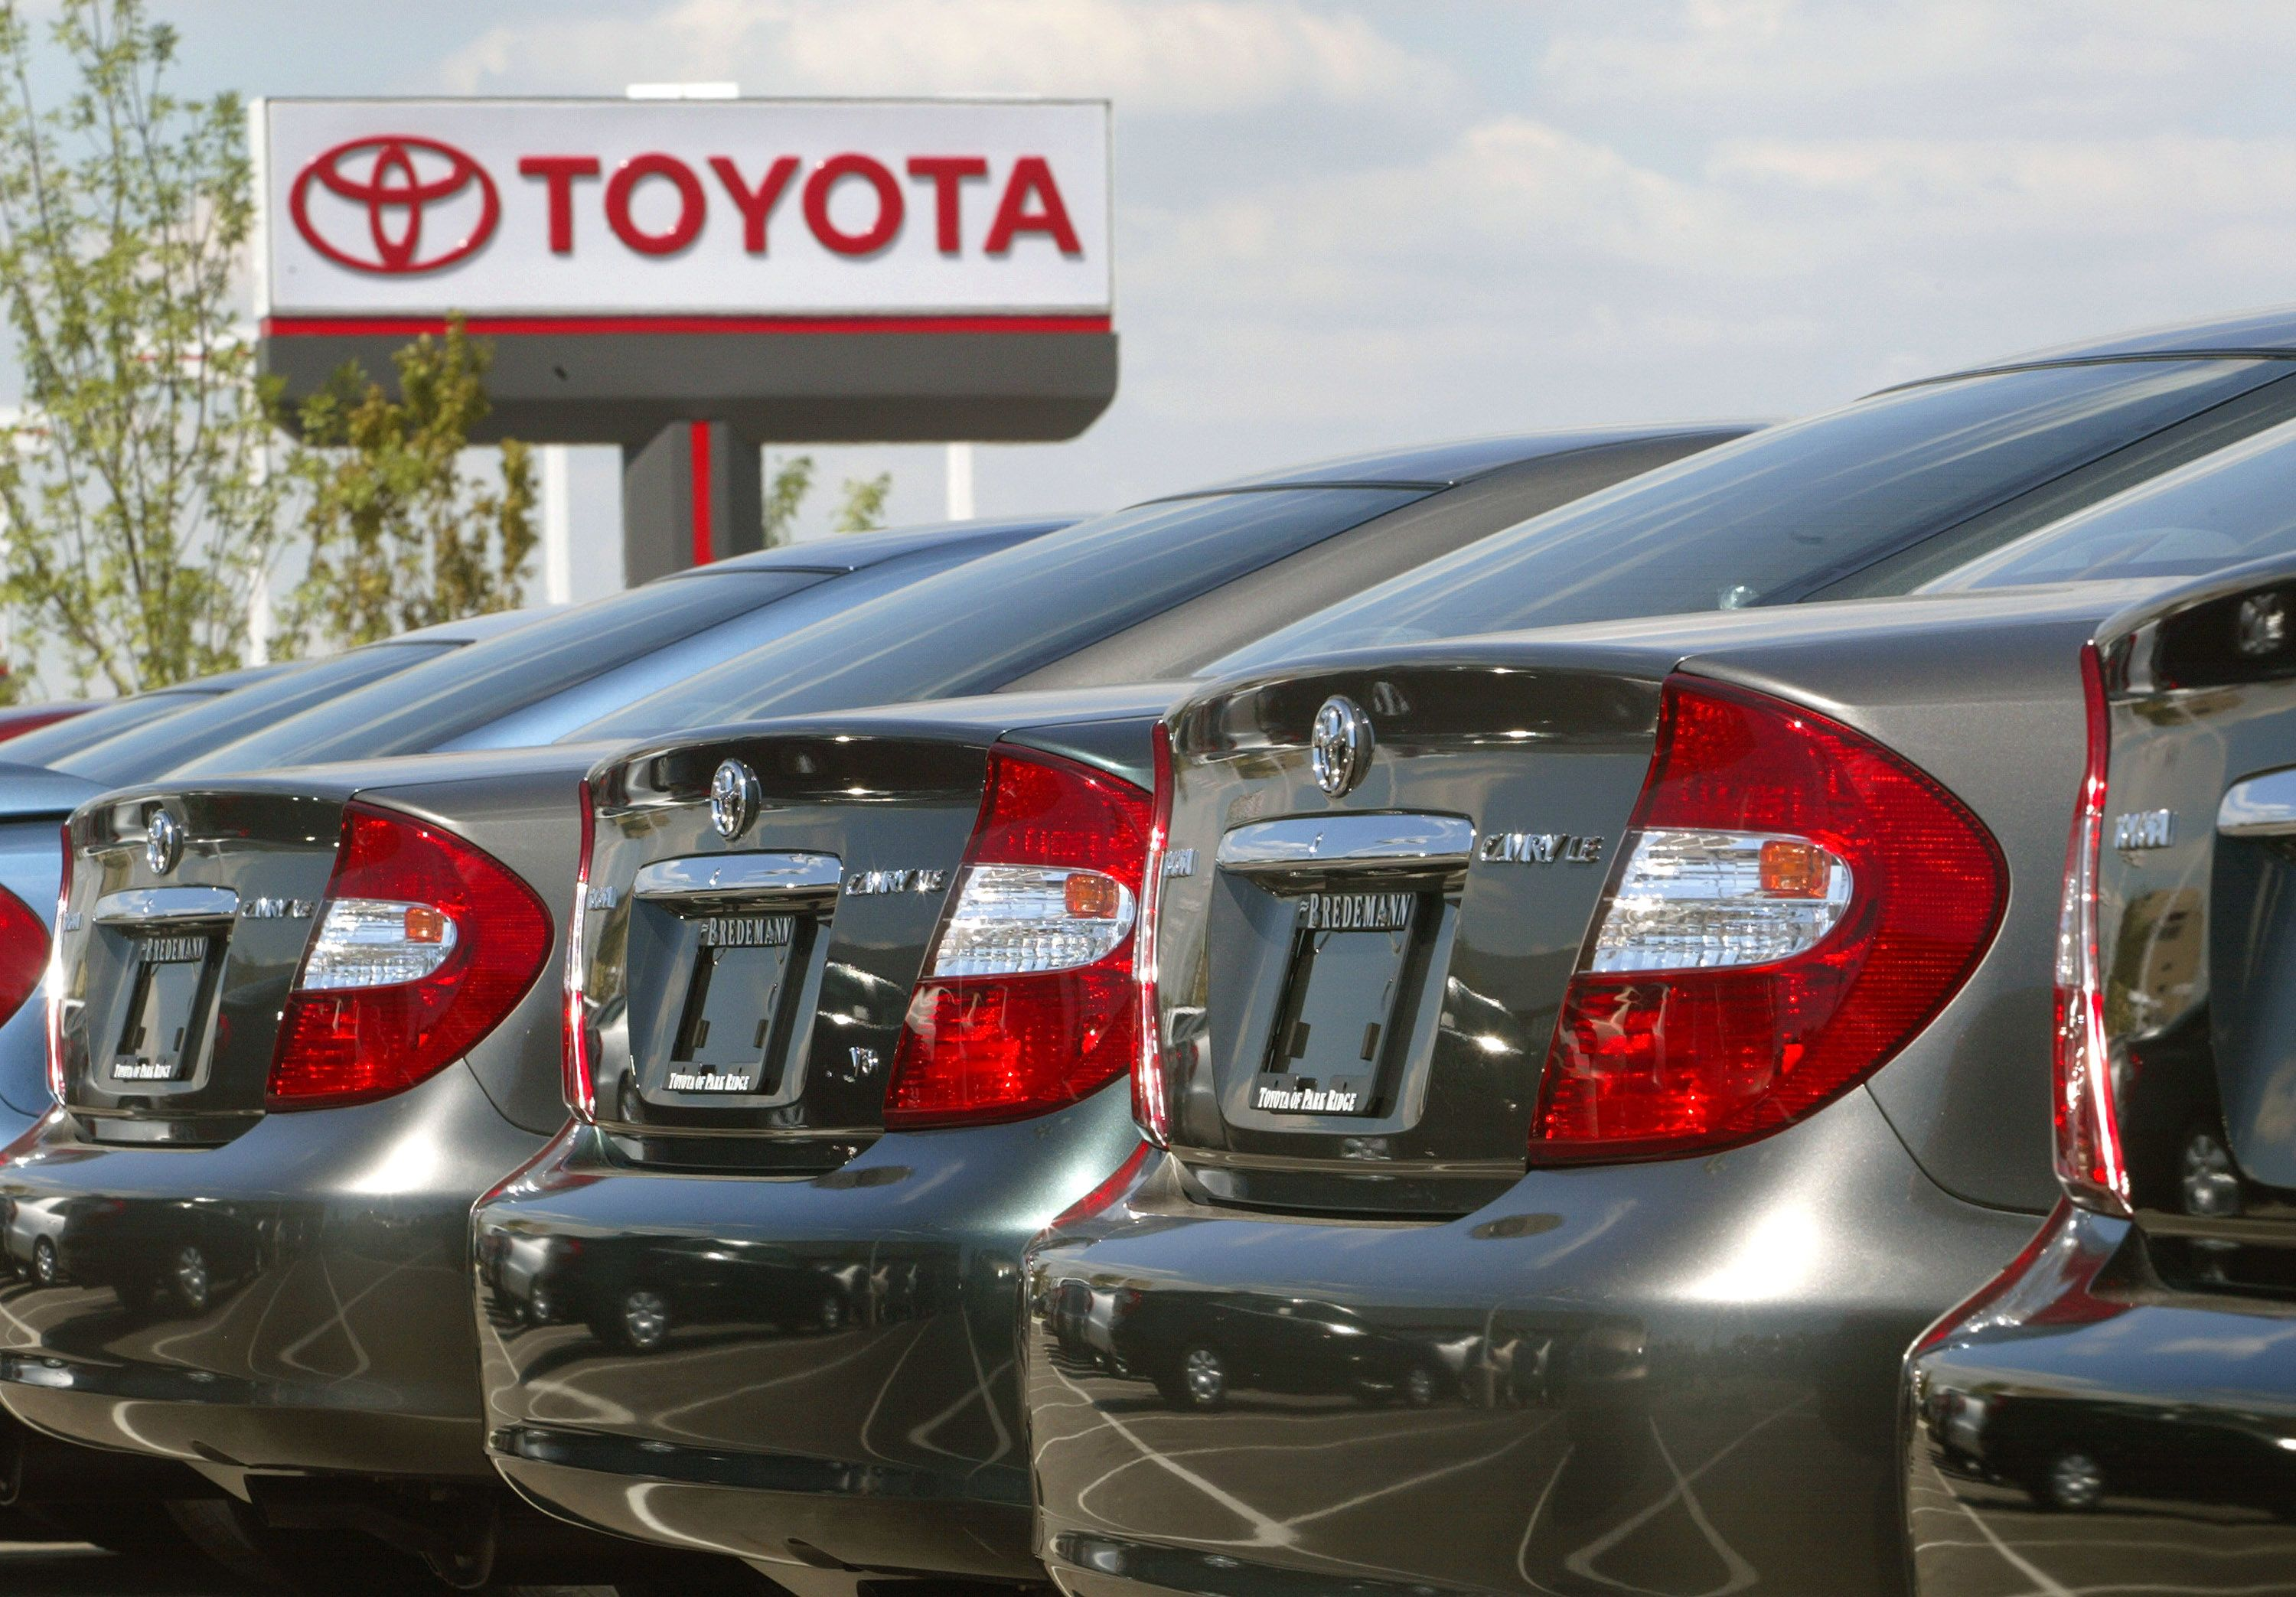 Toyota, Fiat Chrysler US sales fall in April